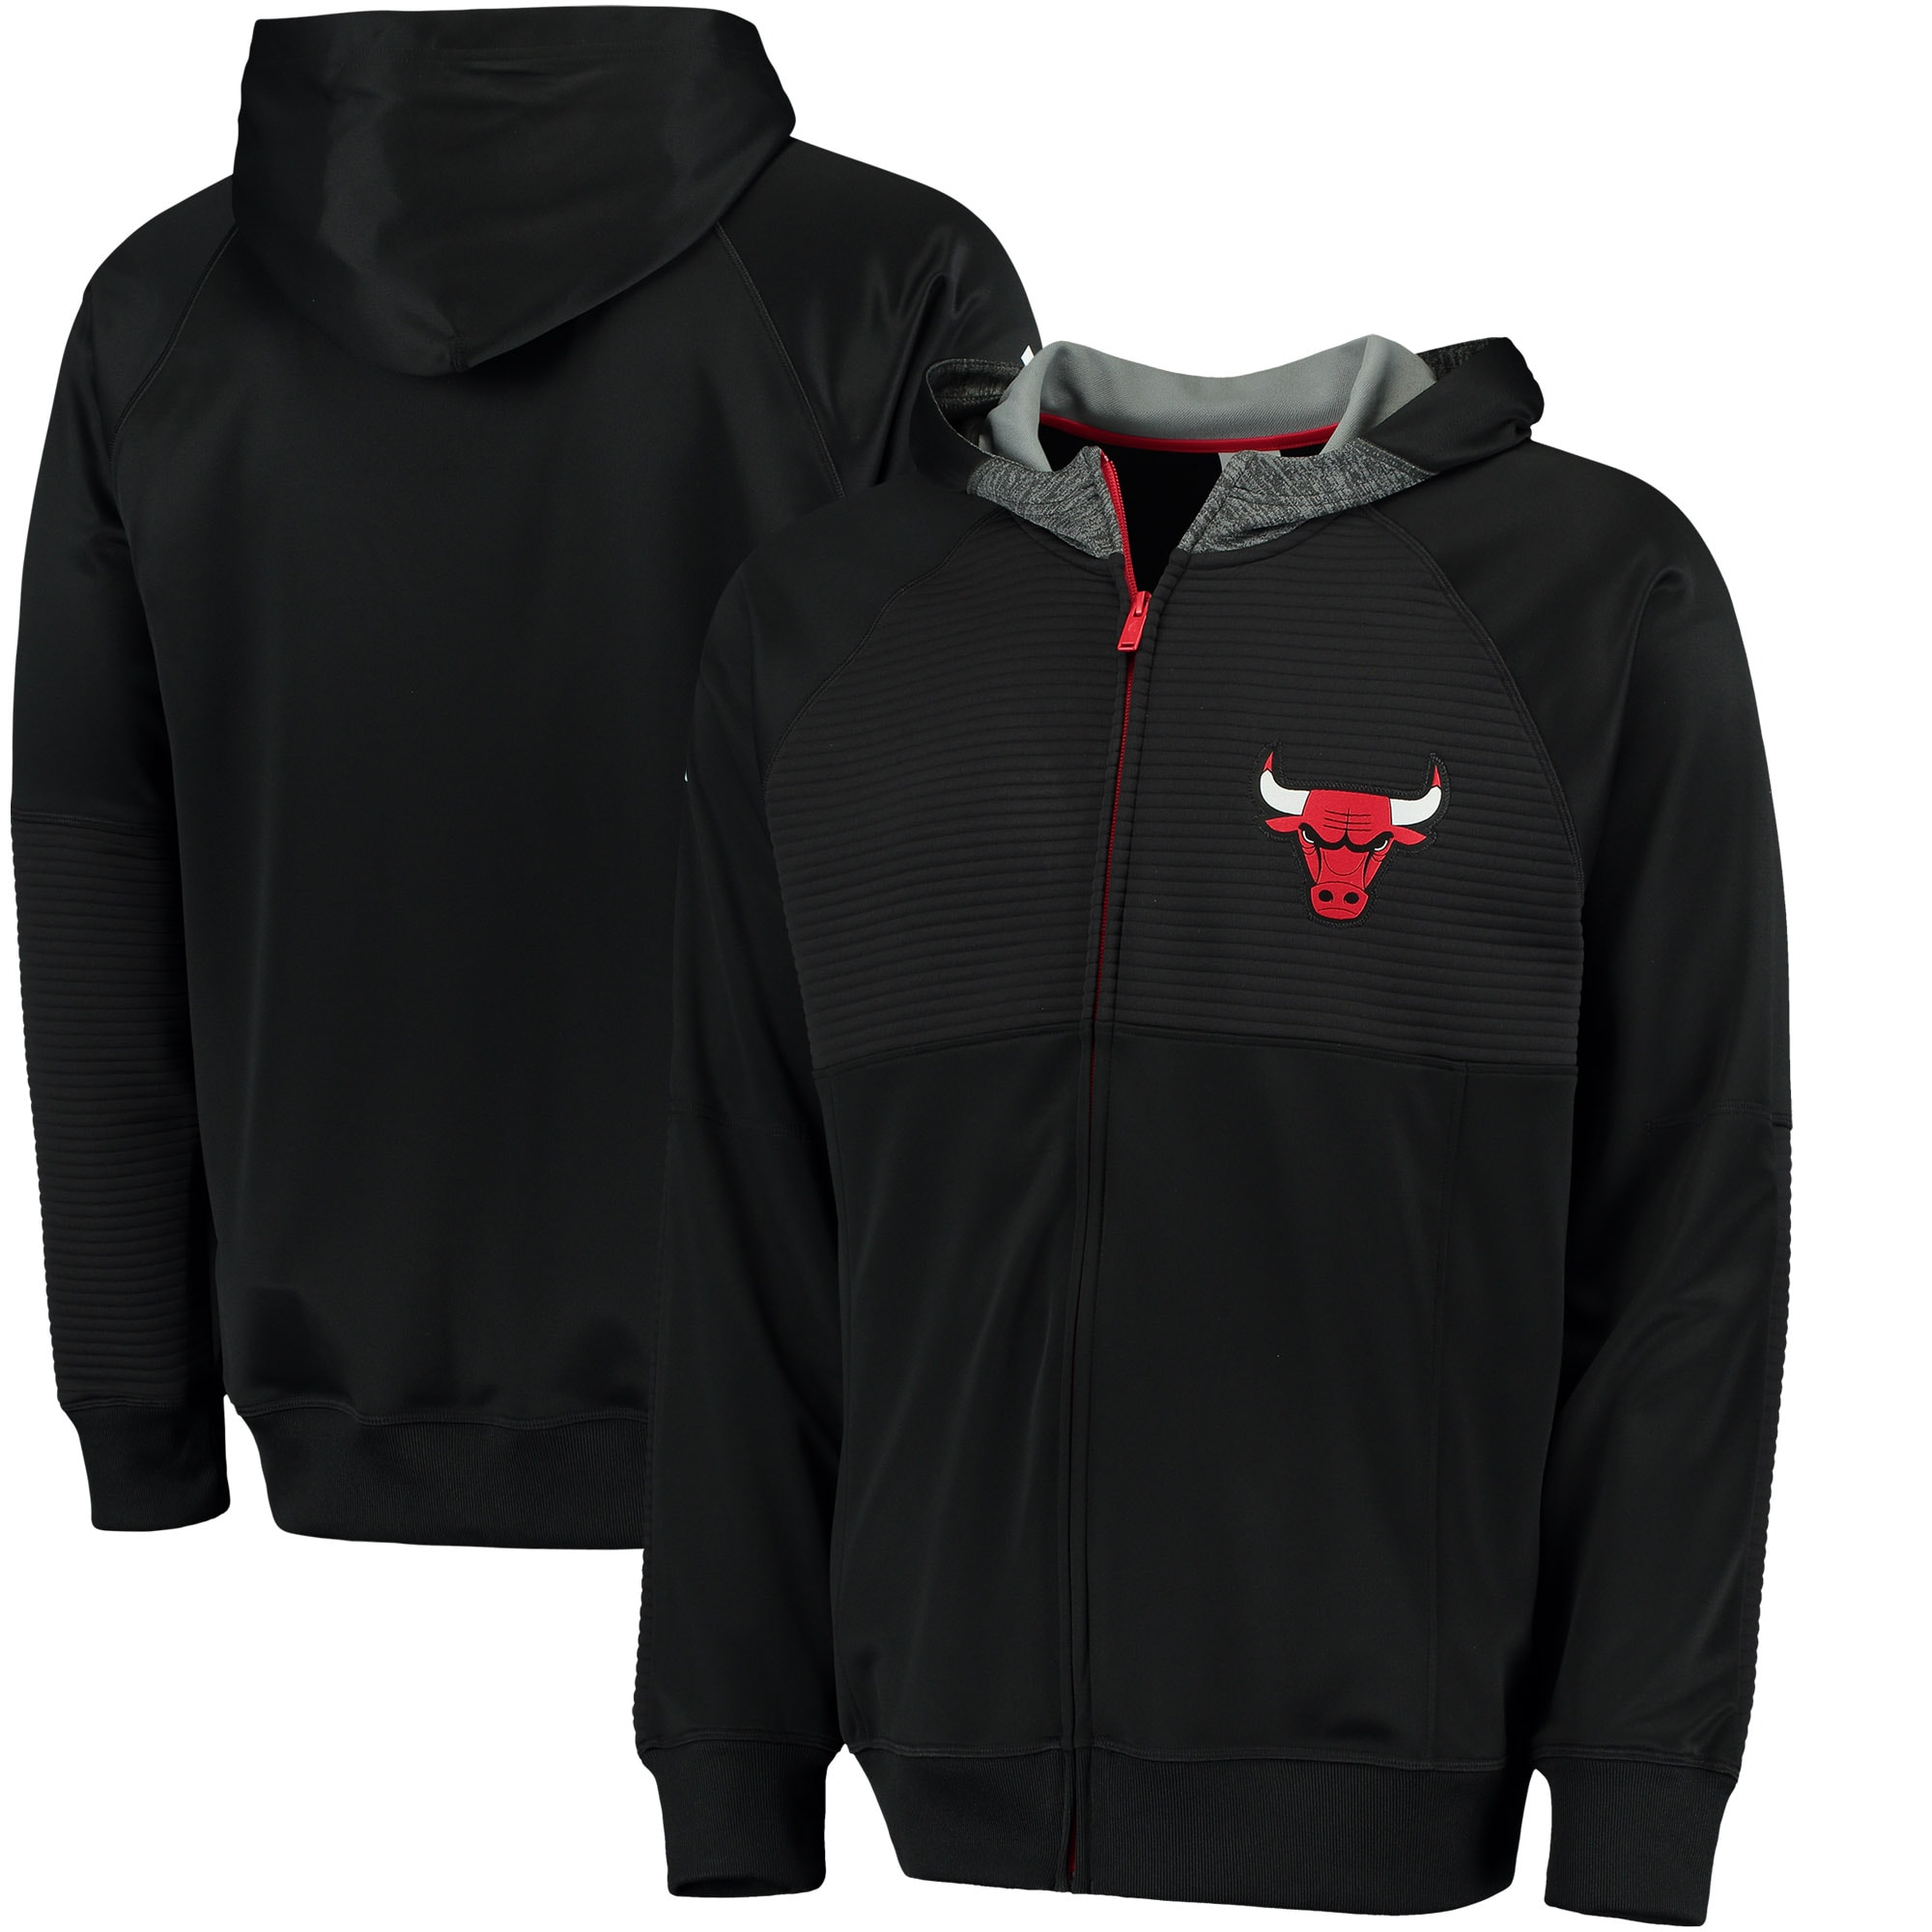 Chicago Bulls adidas 2016 Pre-Game Full-Zip Hooded Jacket - Black